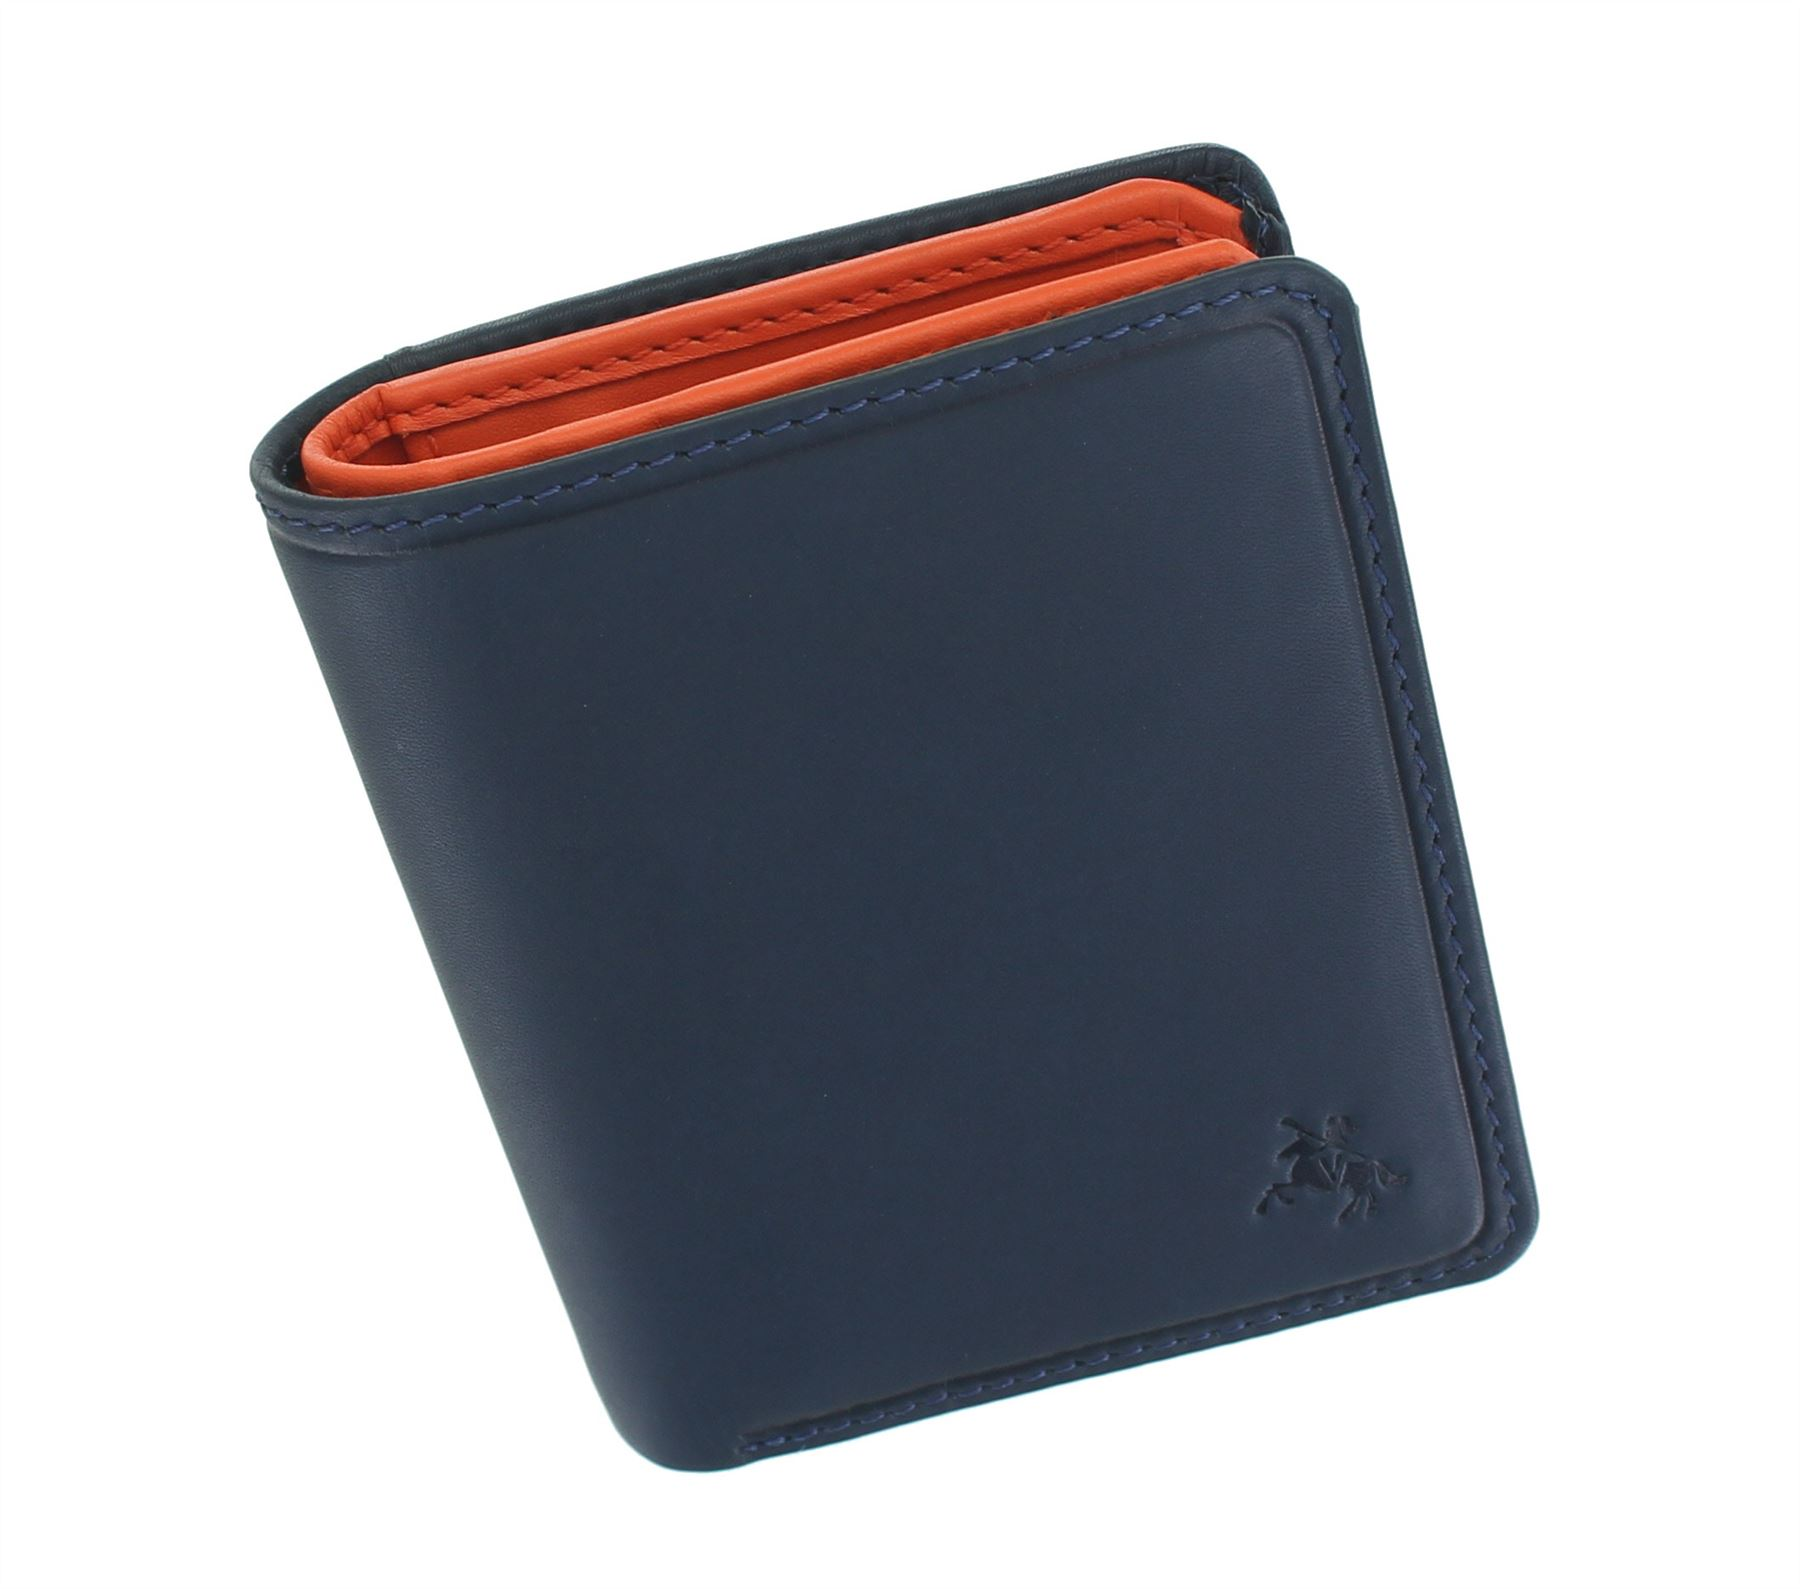 Visconti Palermo Collection Leather Wallet with RFID and Tap and Go PLR70